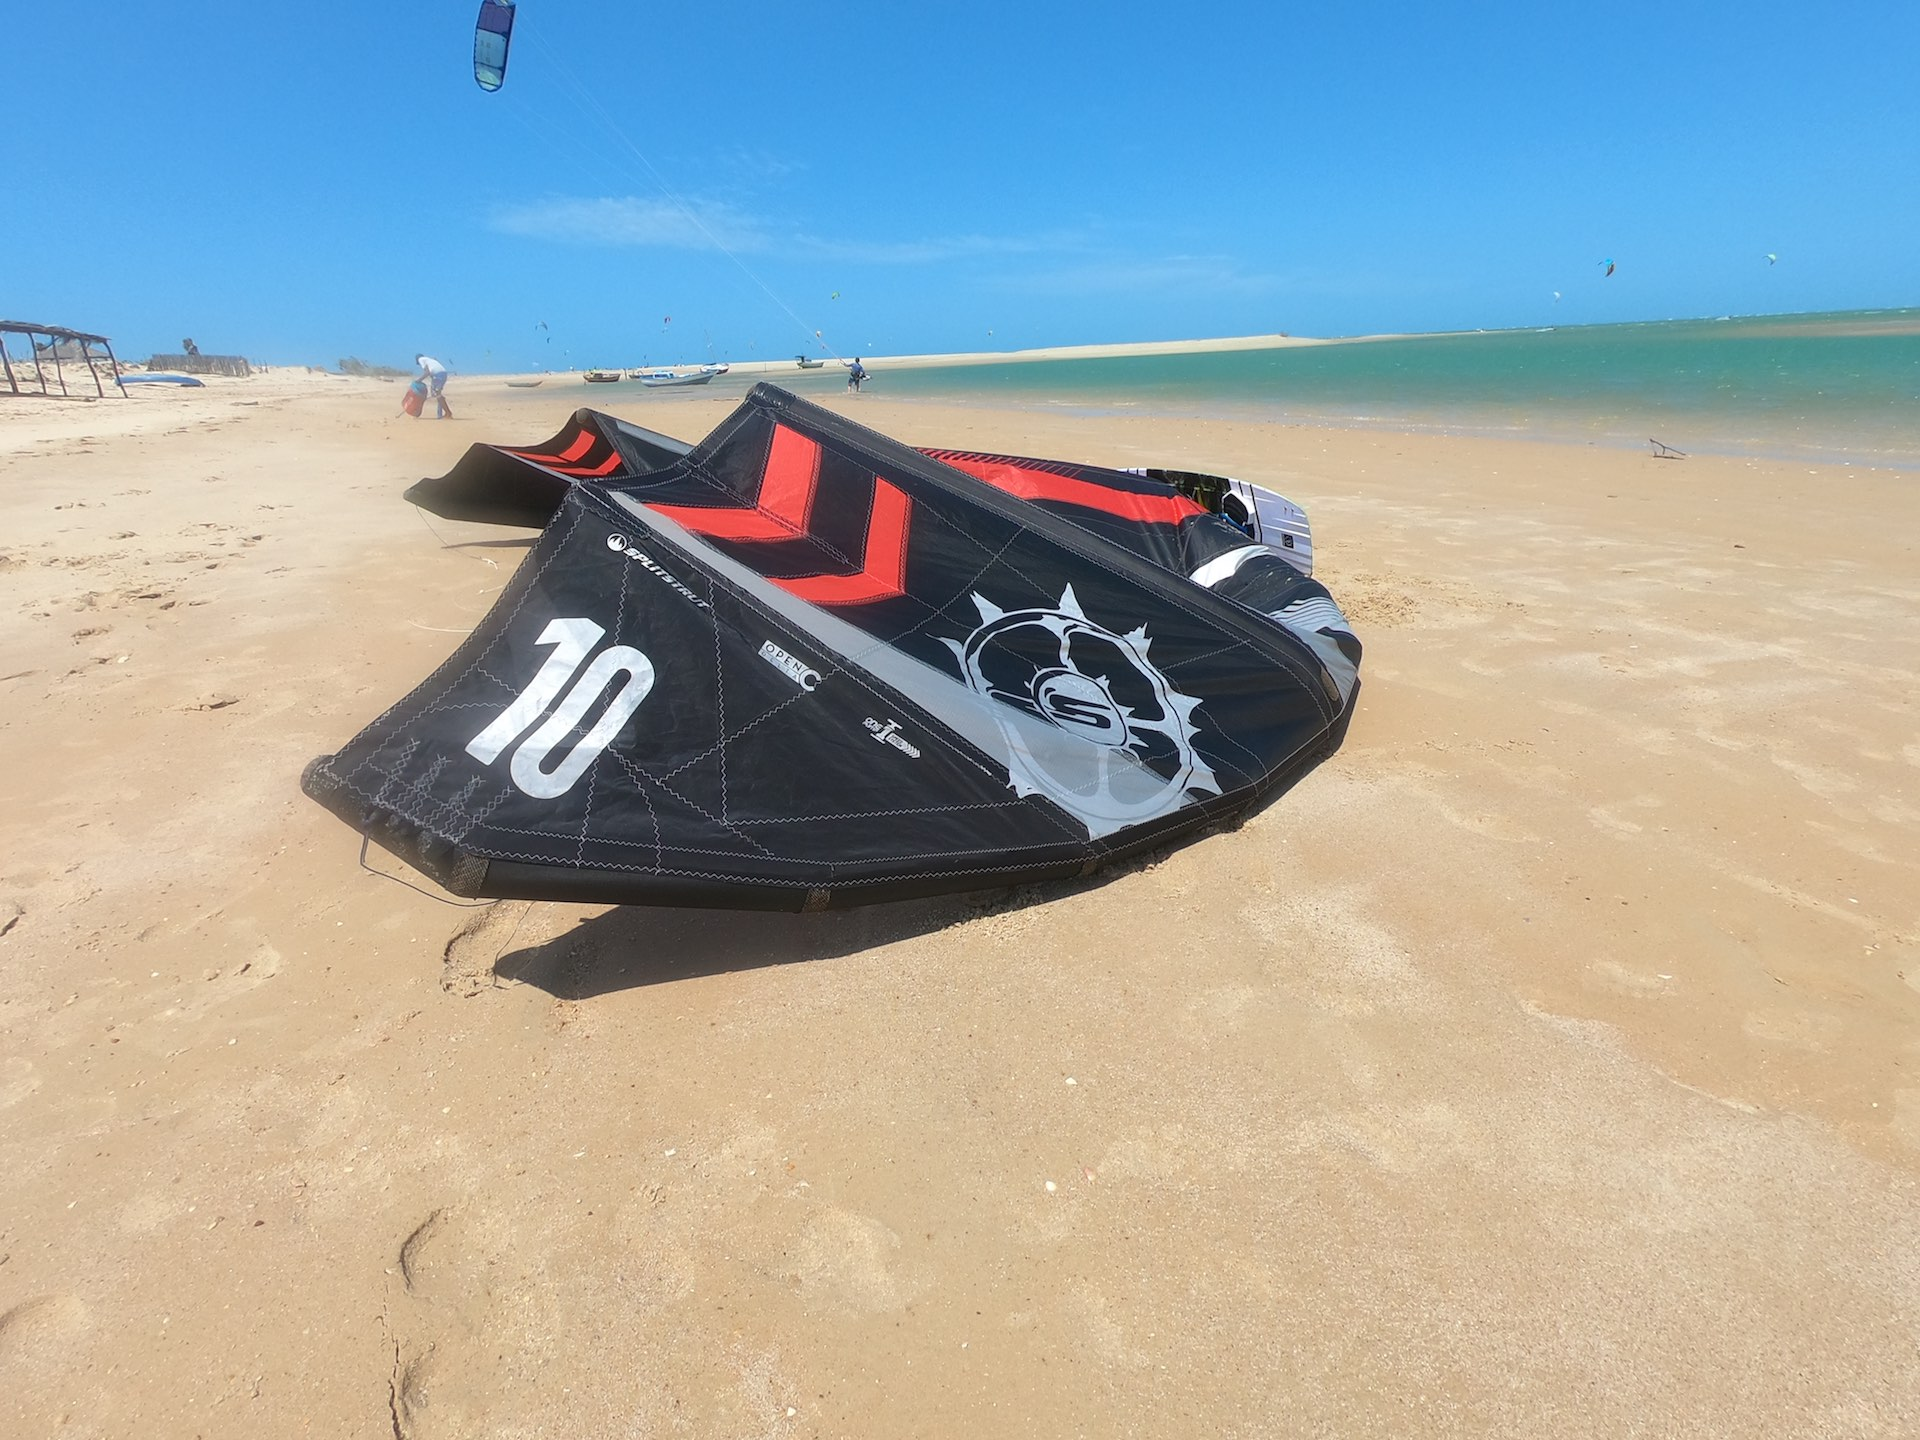 Macapa with the amazing kite lagoon in brasil.